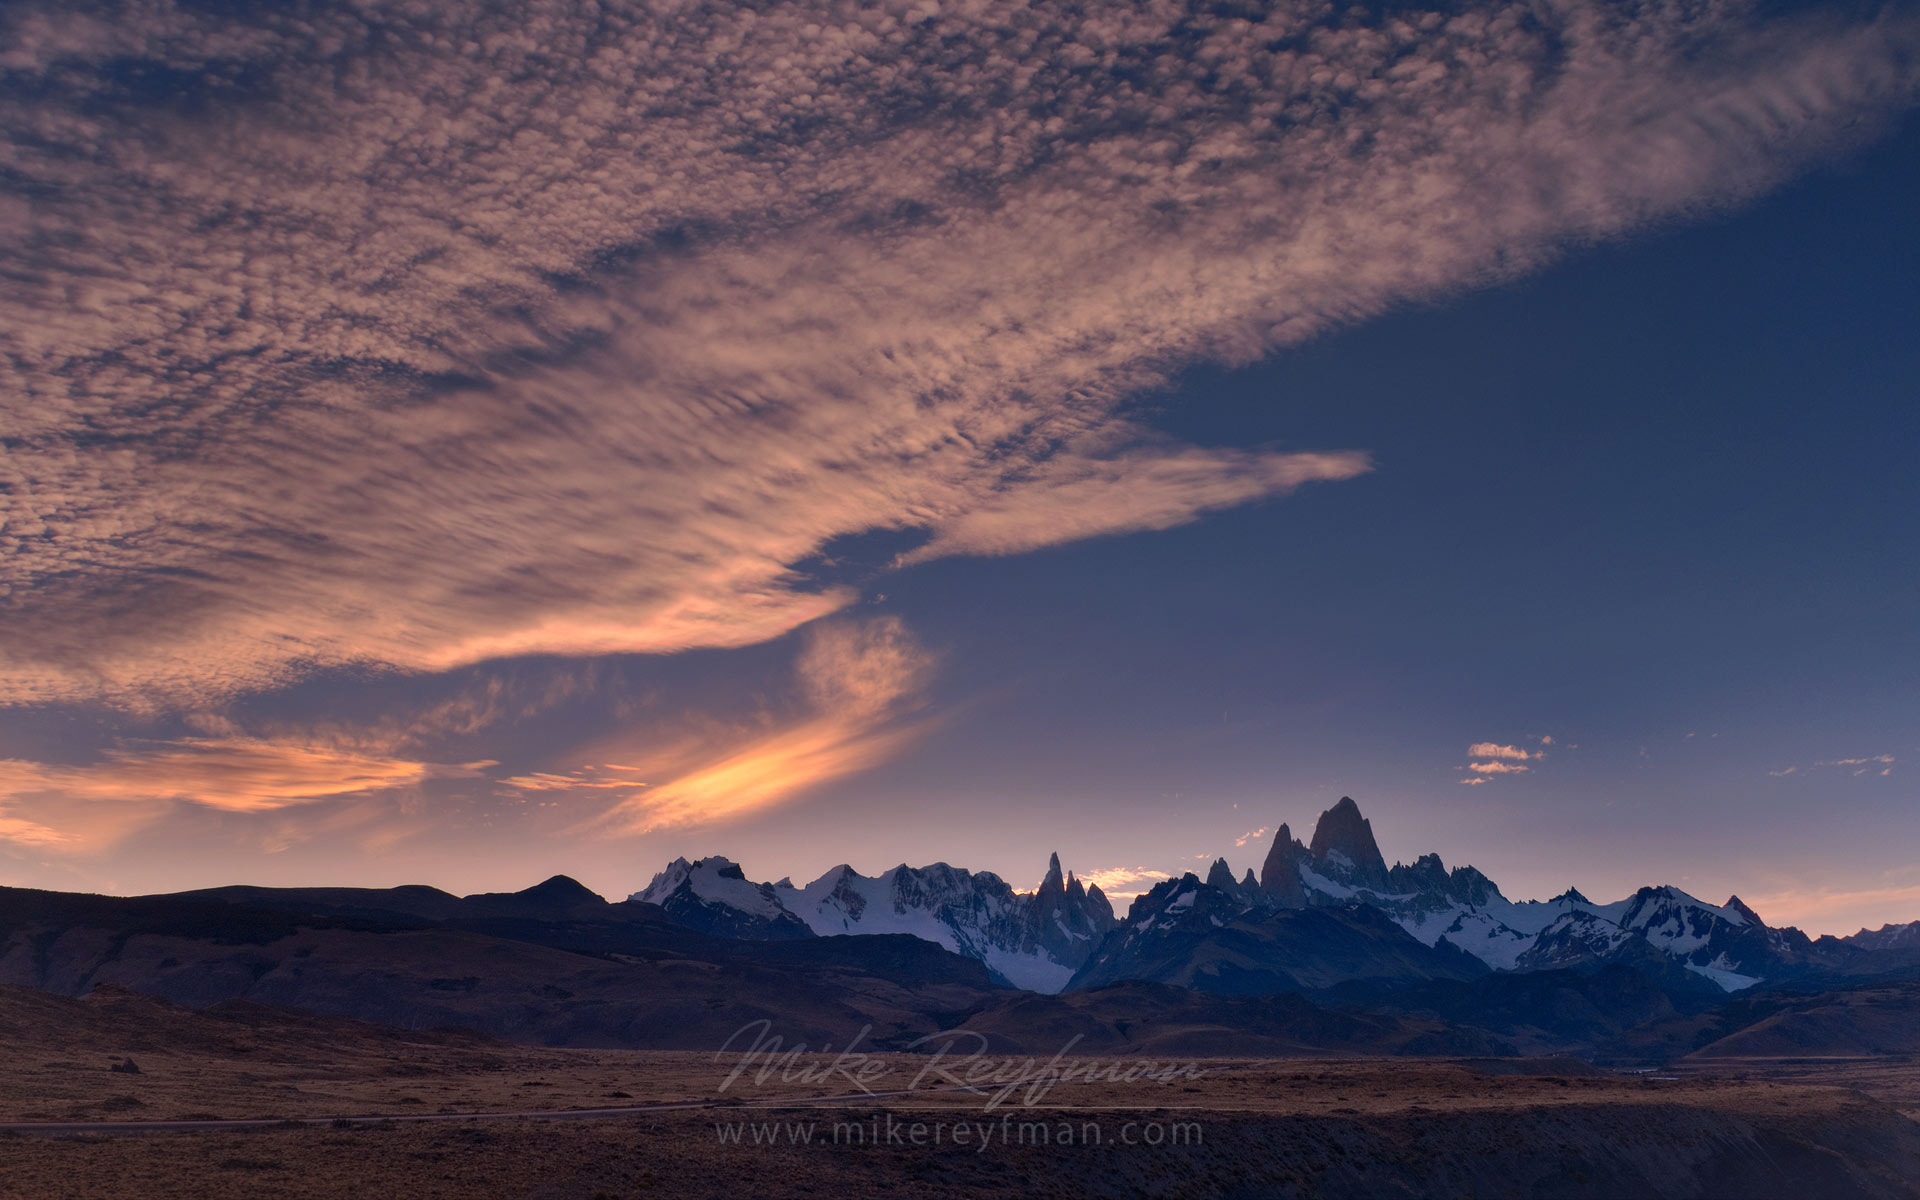 Windy twilight. Fitzroy and Cerro Torre massifs after sunset from Las Vueltas River canyon overlook. Patagonian Andes, Santa Cruz, Argentina. - Fitzroy-Cerro-Torre-Perito-Moreno-Patagonia-Argentina - Mike Reyfman Photography